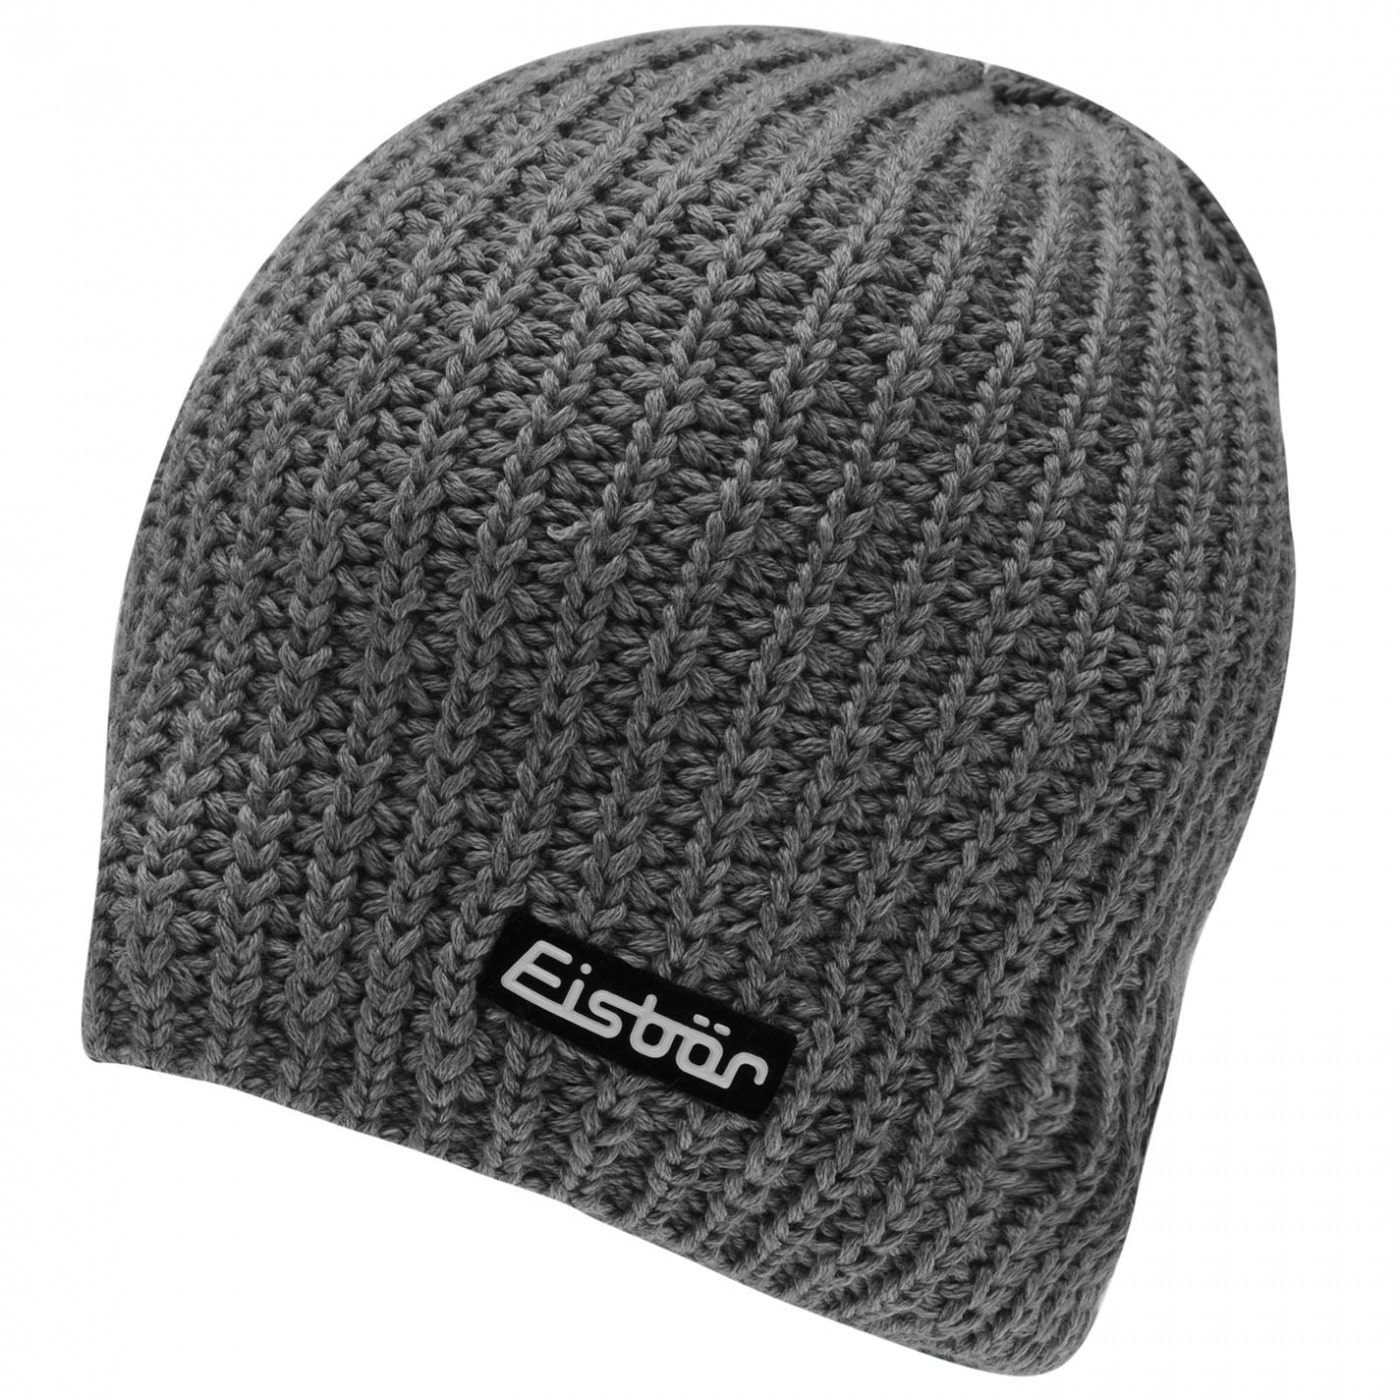 Eisbär Catche Beanie Hat Adults